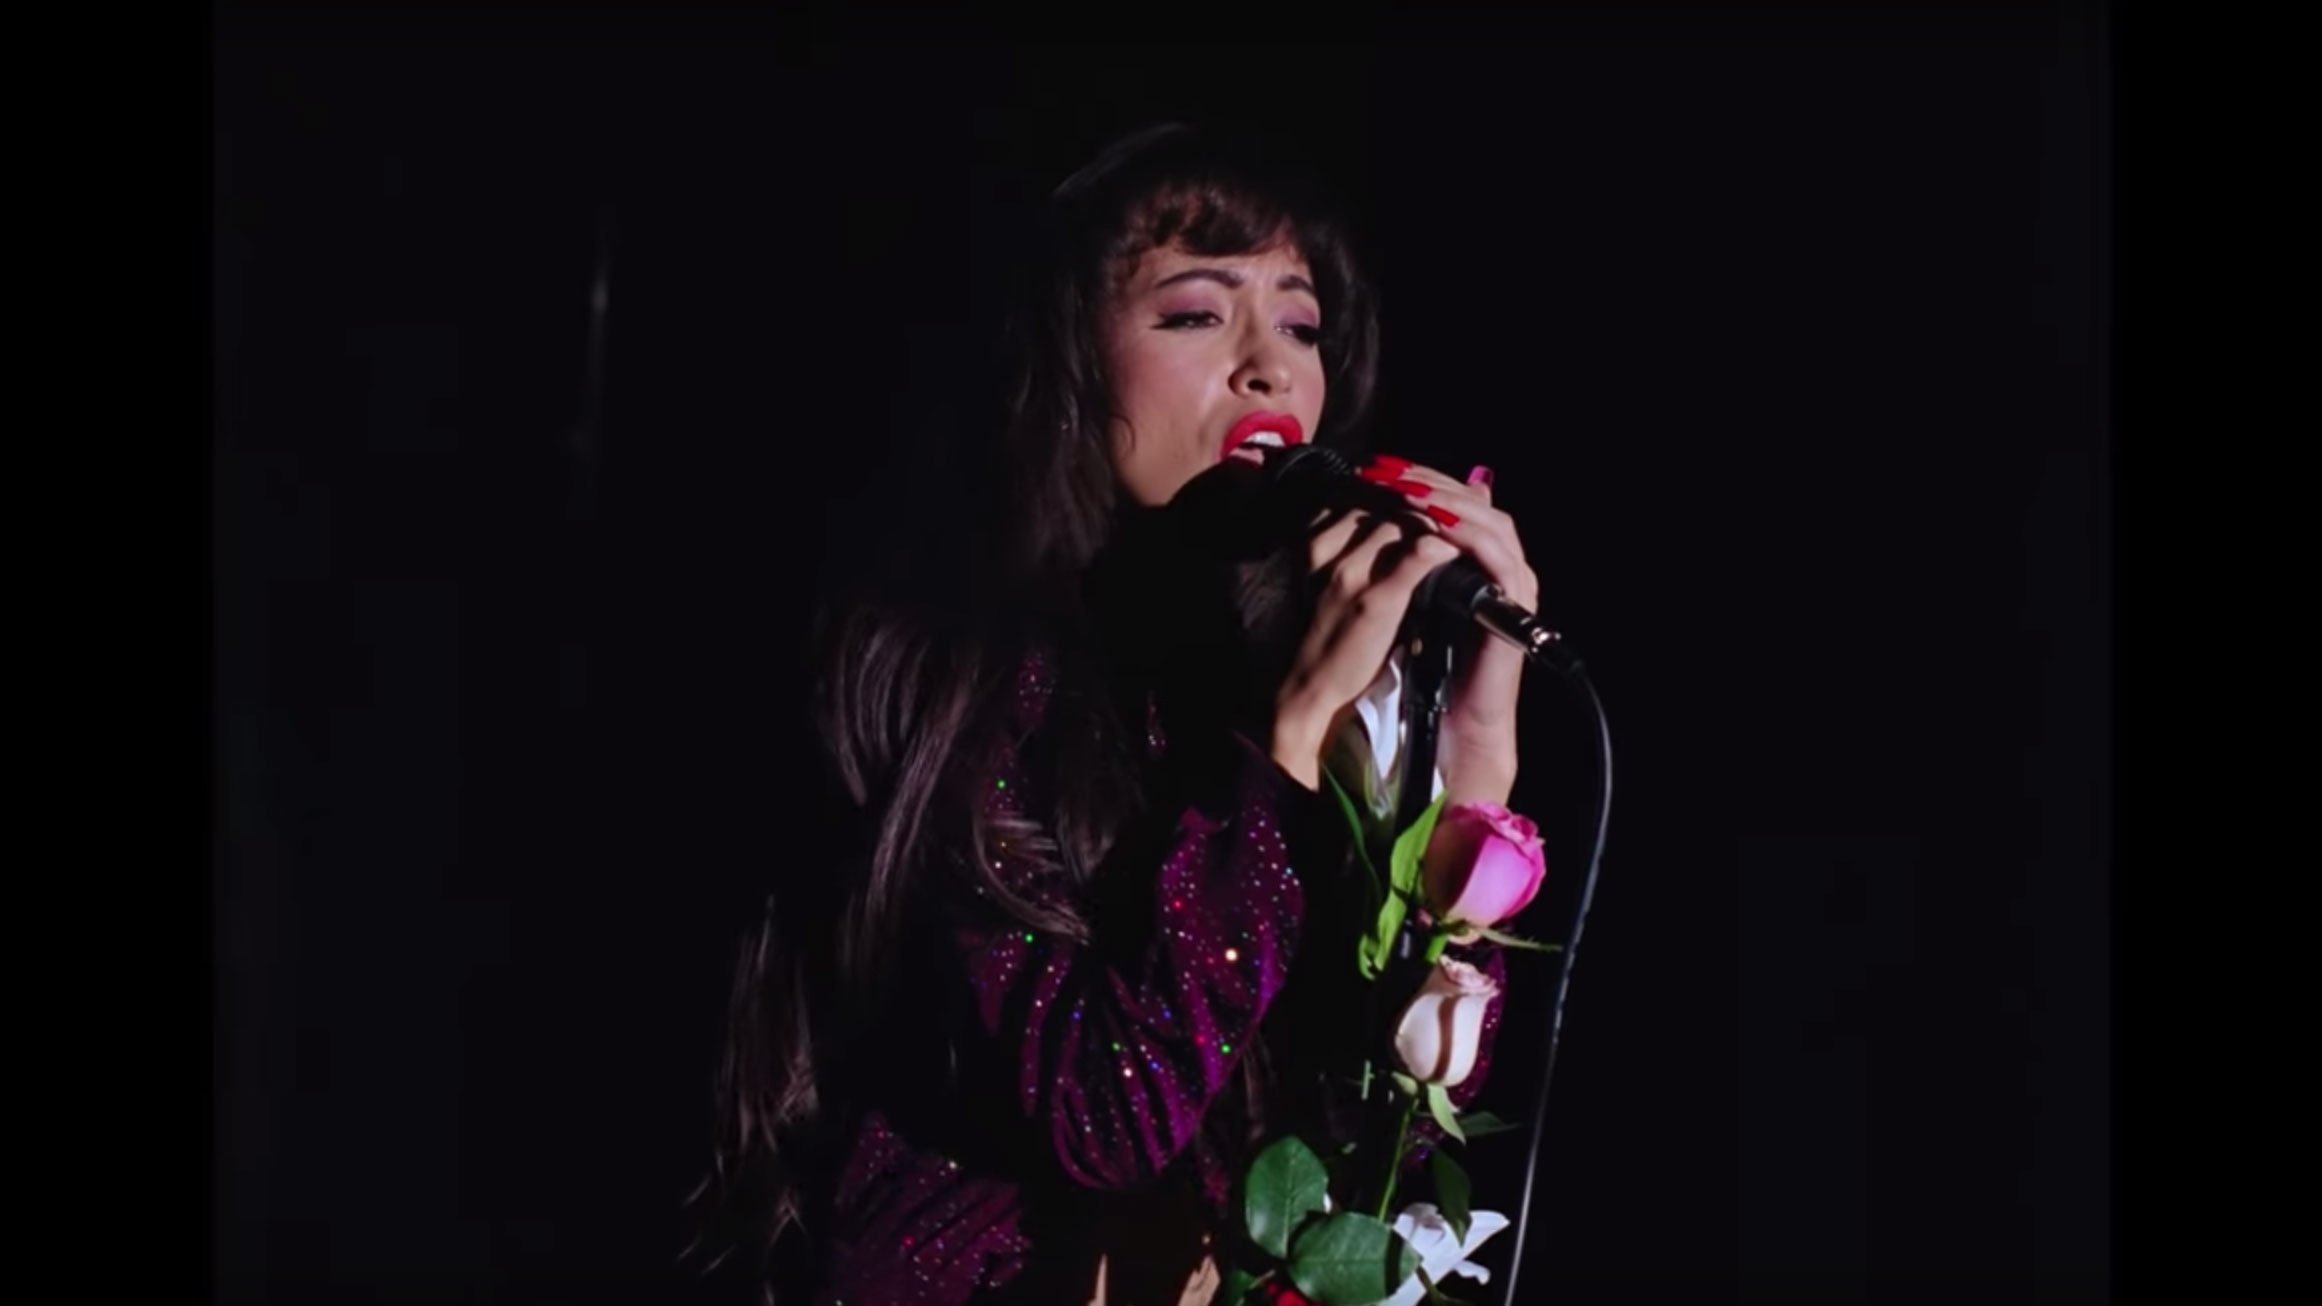 First look at Christian Serratos as Selena Quintanilla in new Netflix series